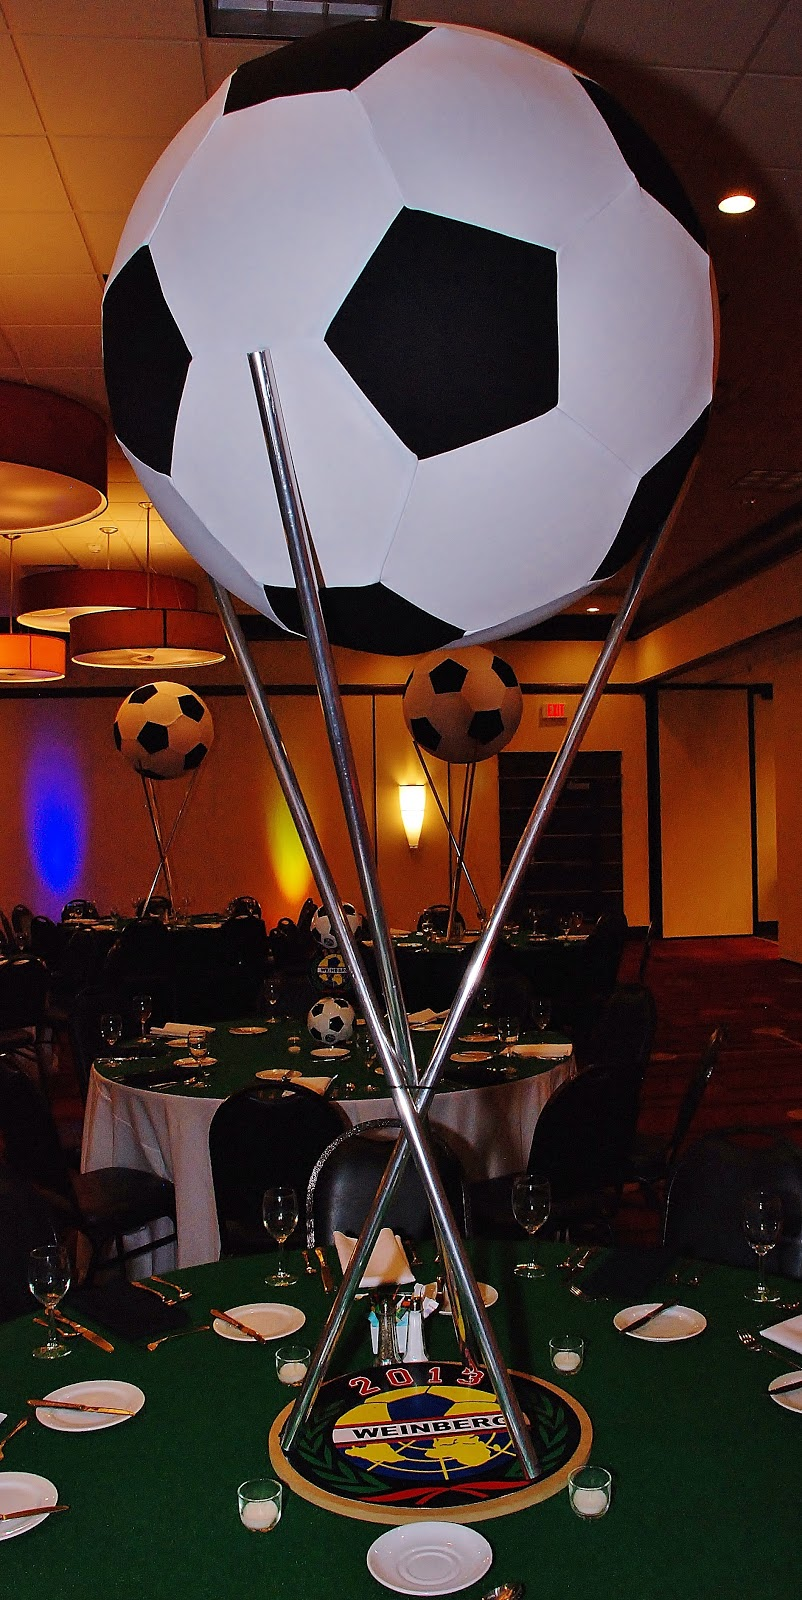 Soccer ball craft ideas - Monday March 11 2013